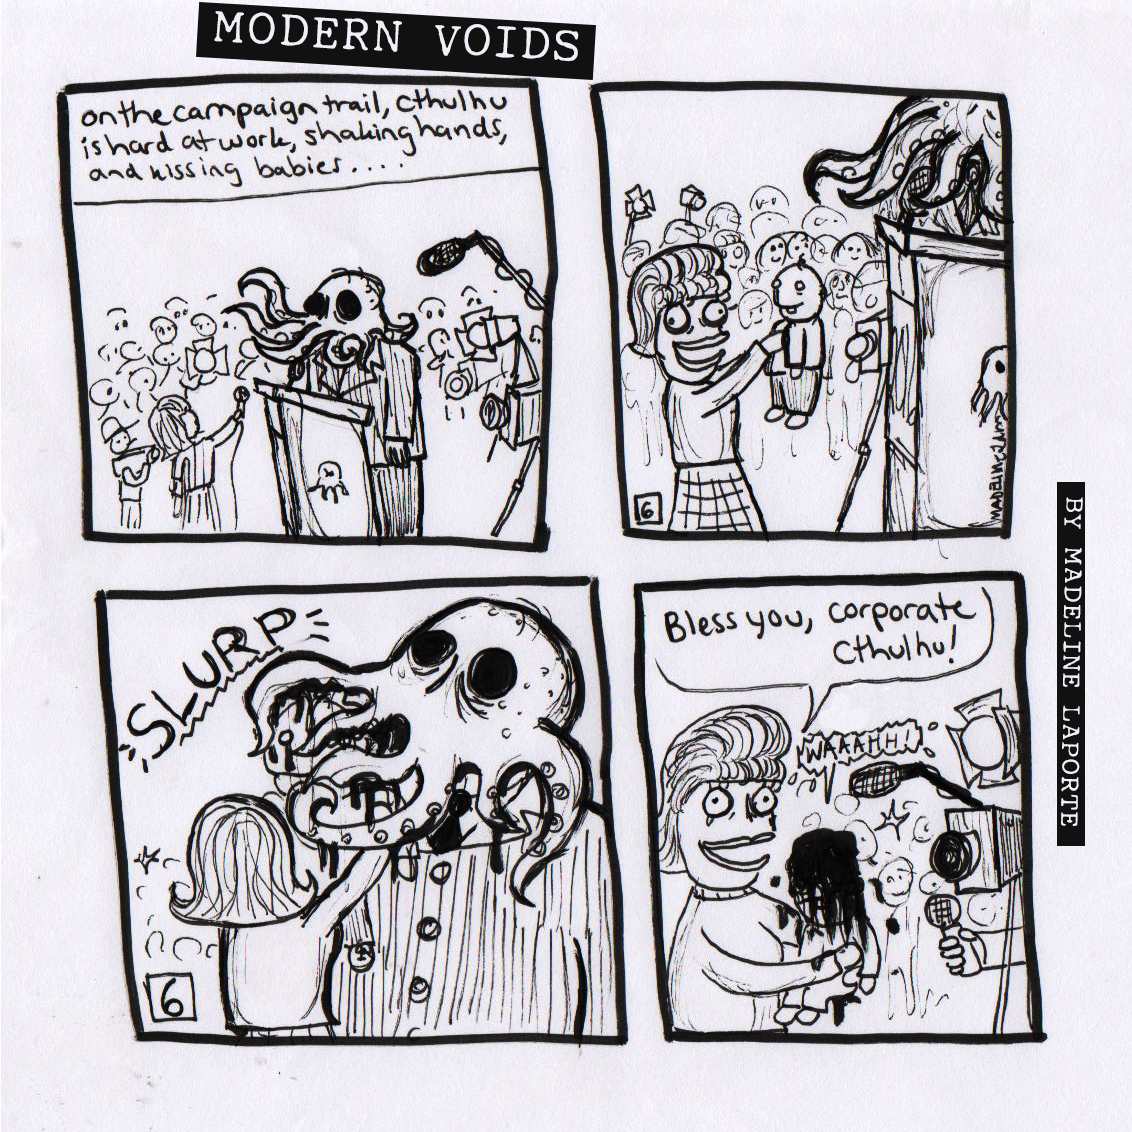 corporation modern voids posted in art comics corporate cthulhu politics image format and tagged babies comic strip corporation cthulhu culture current events